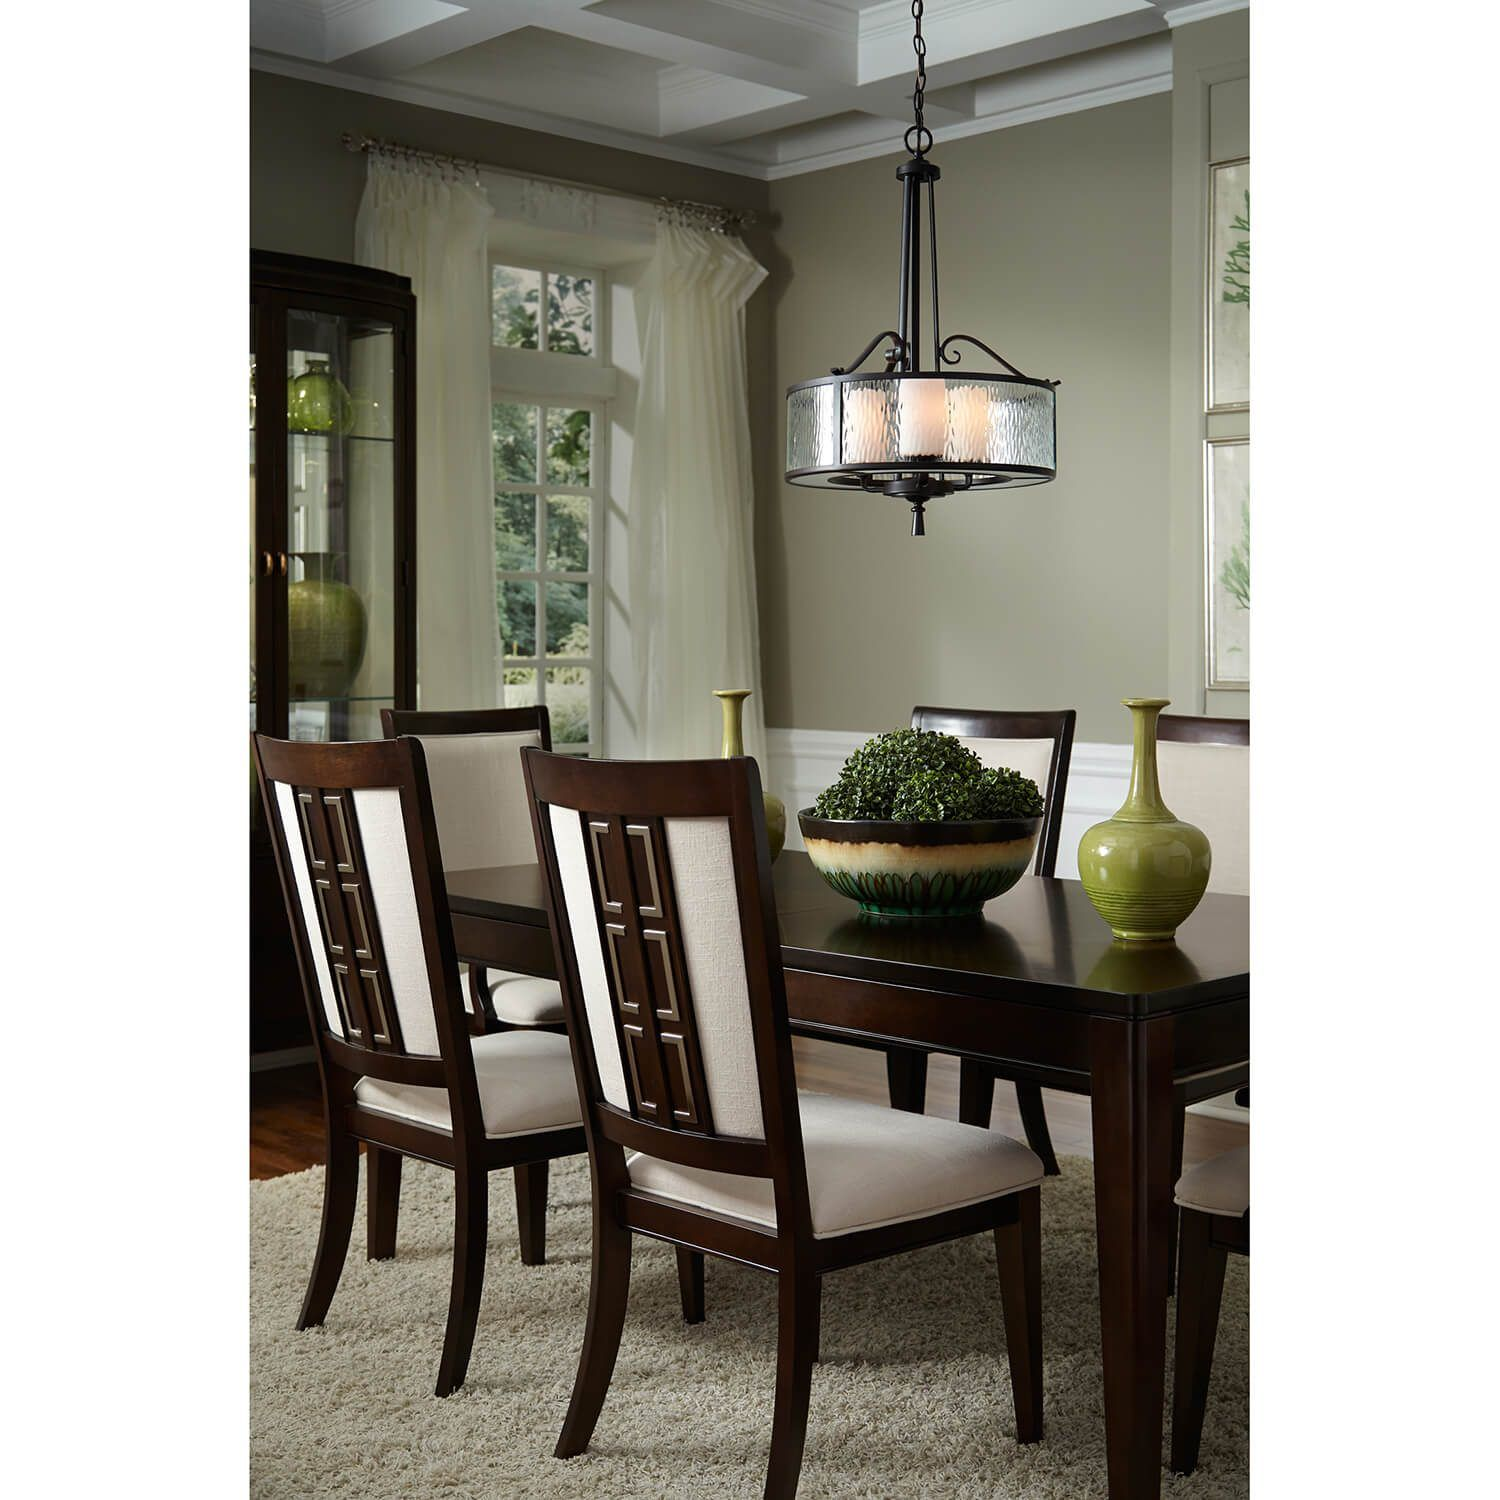 Pinhortons Home Lighting On Industry Trends  Dining Room Inspiration Trends In Dining Rooms Decorating Design